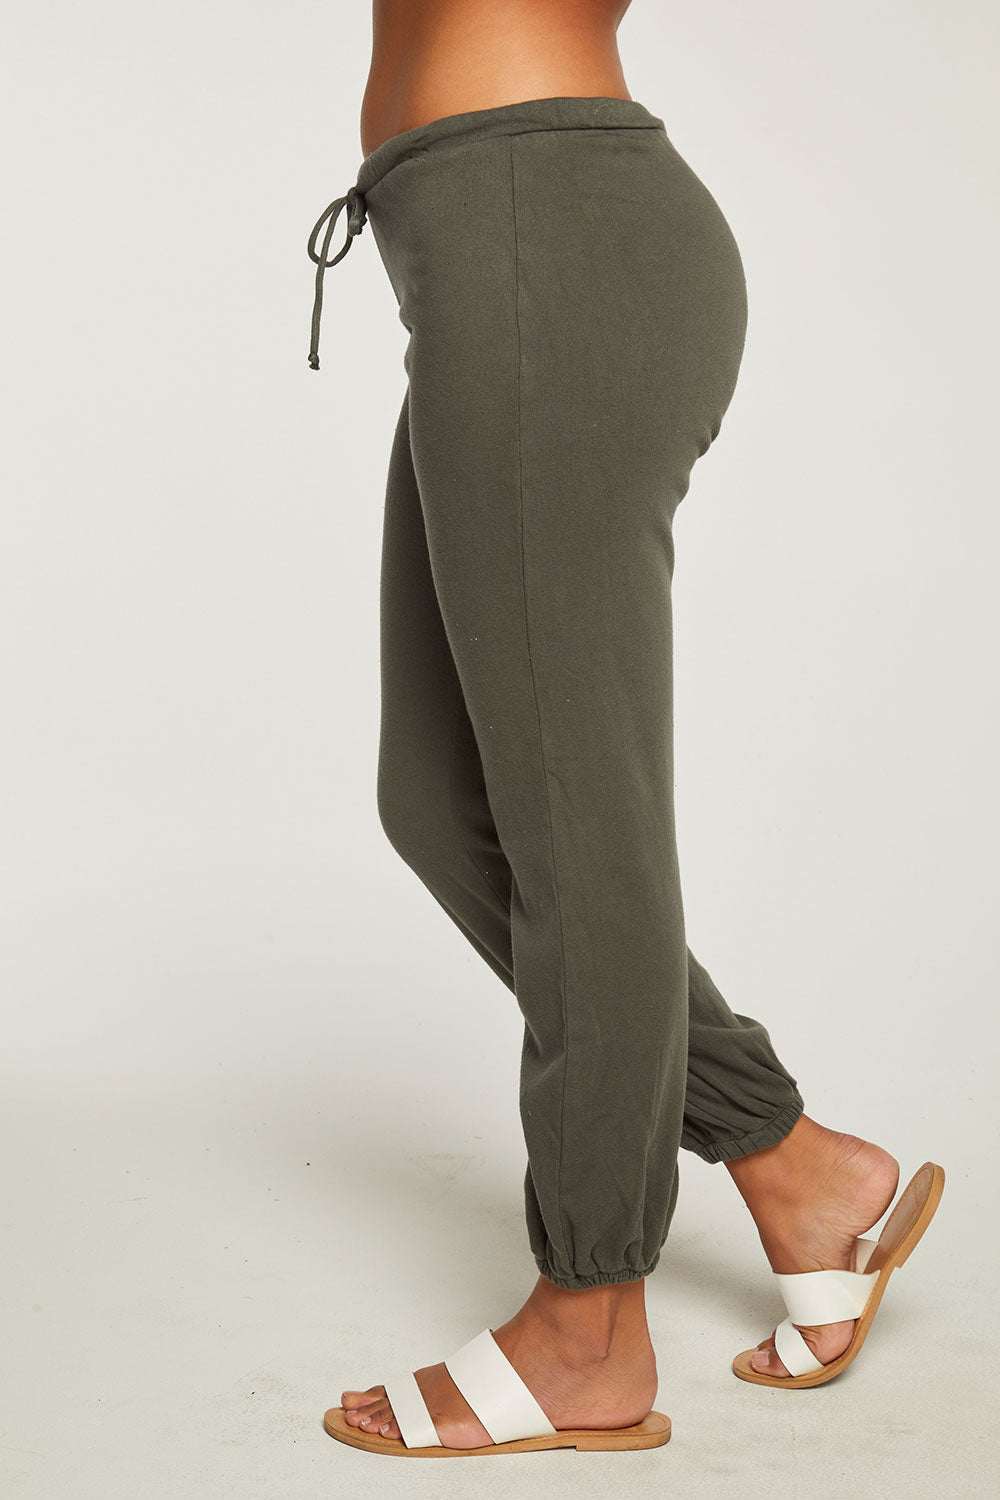 Cotton Fleece Relaxed Jogger WOMENS chaserbrand4.myshopify.com